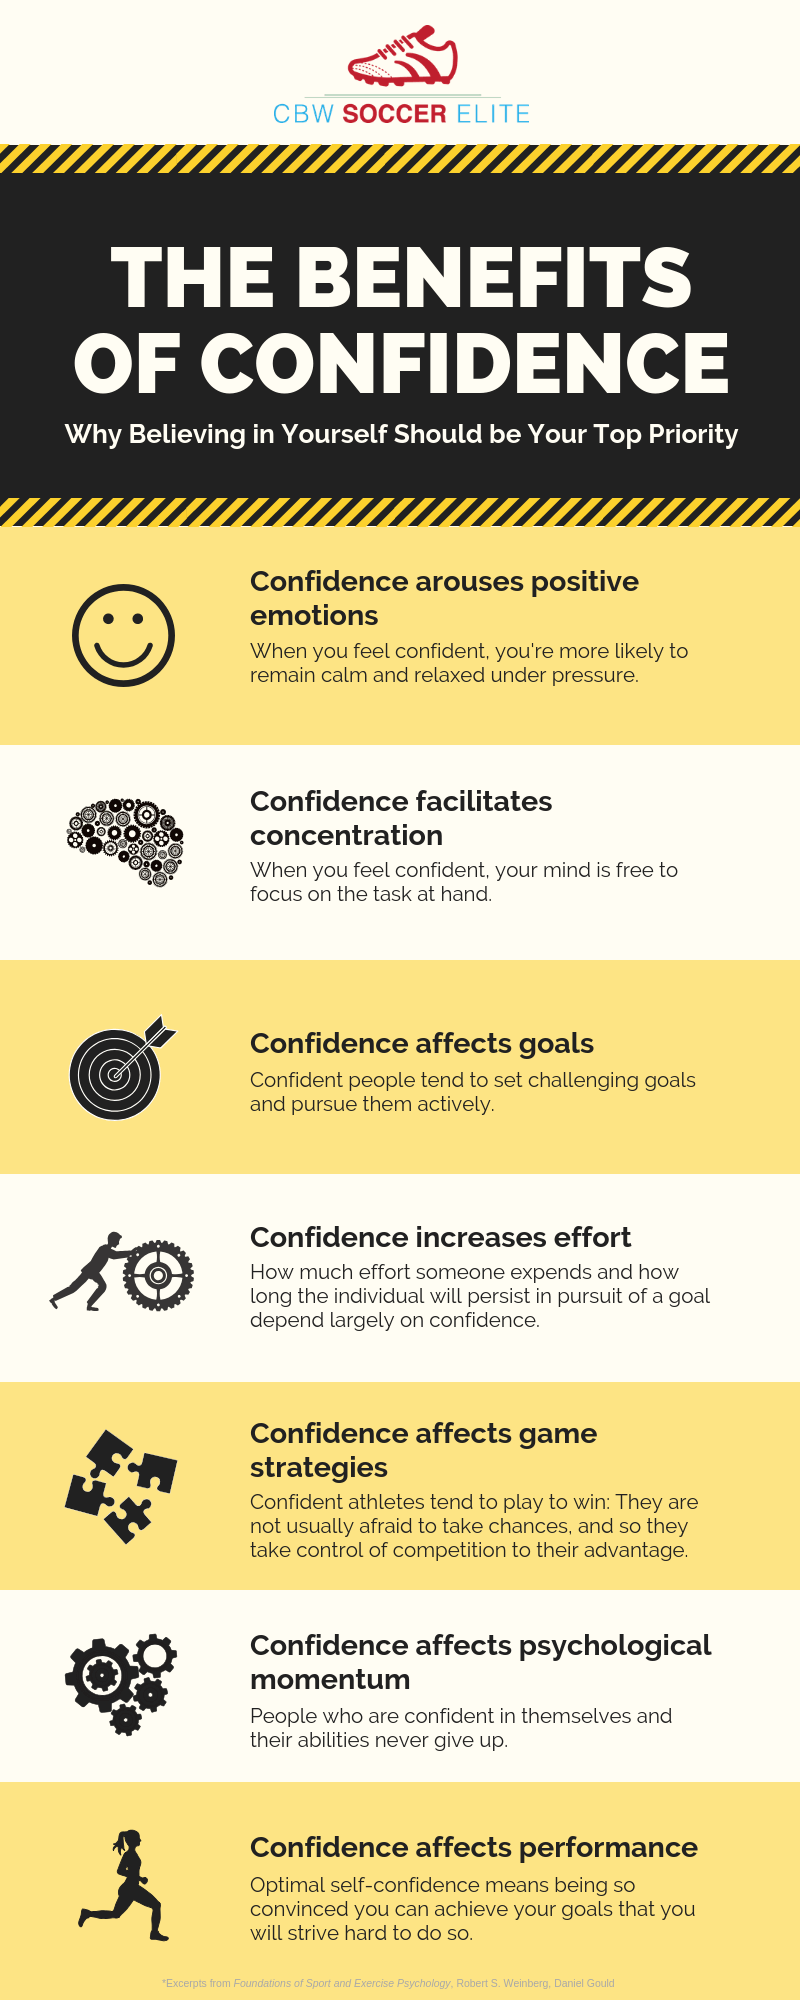 CBW Soccer Elite 7 Benefits of Self-Confidence